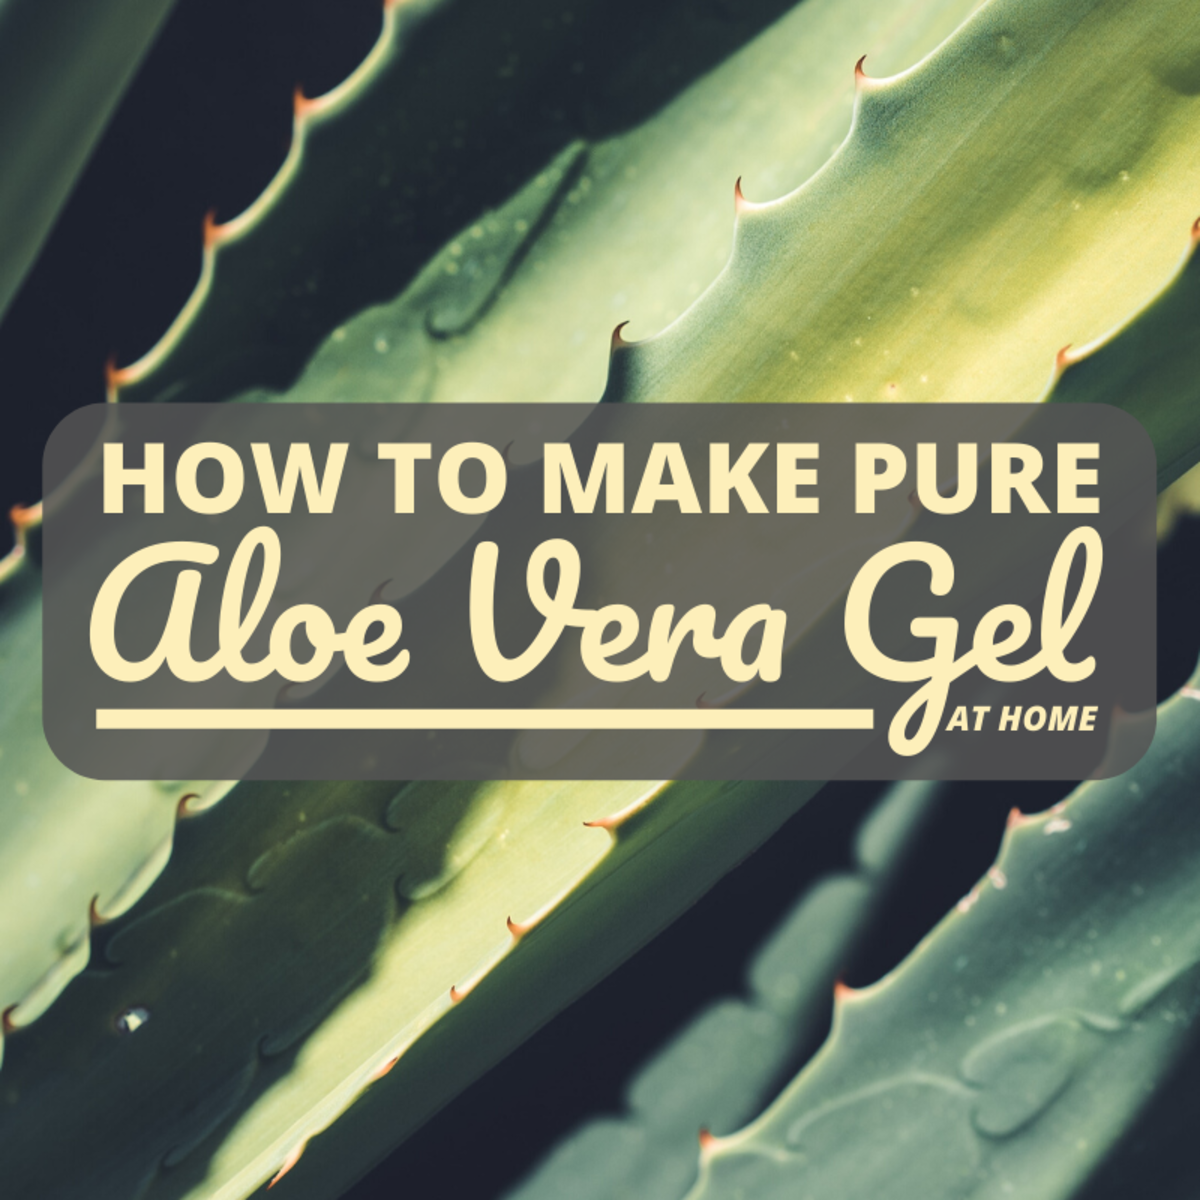 You can make healthy, hydrating Aloe vera gel in your own kitchen in just minutes.